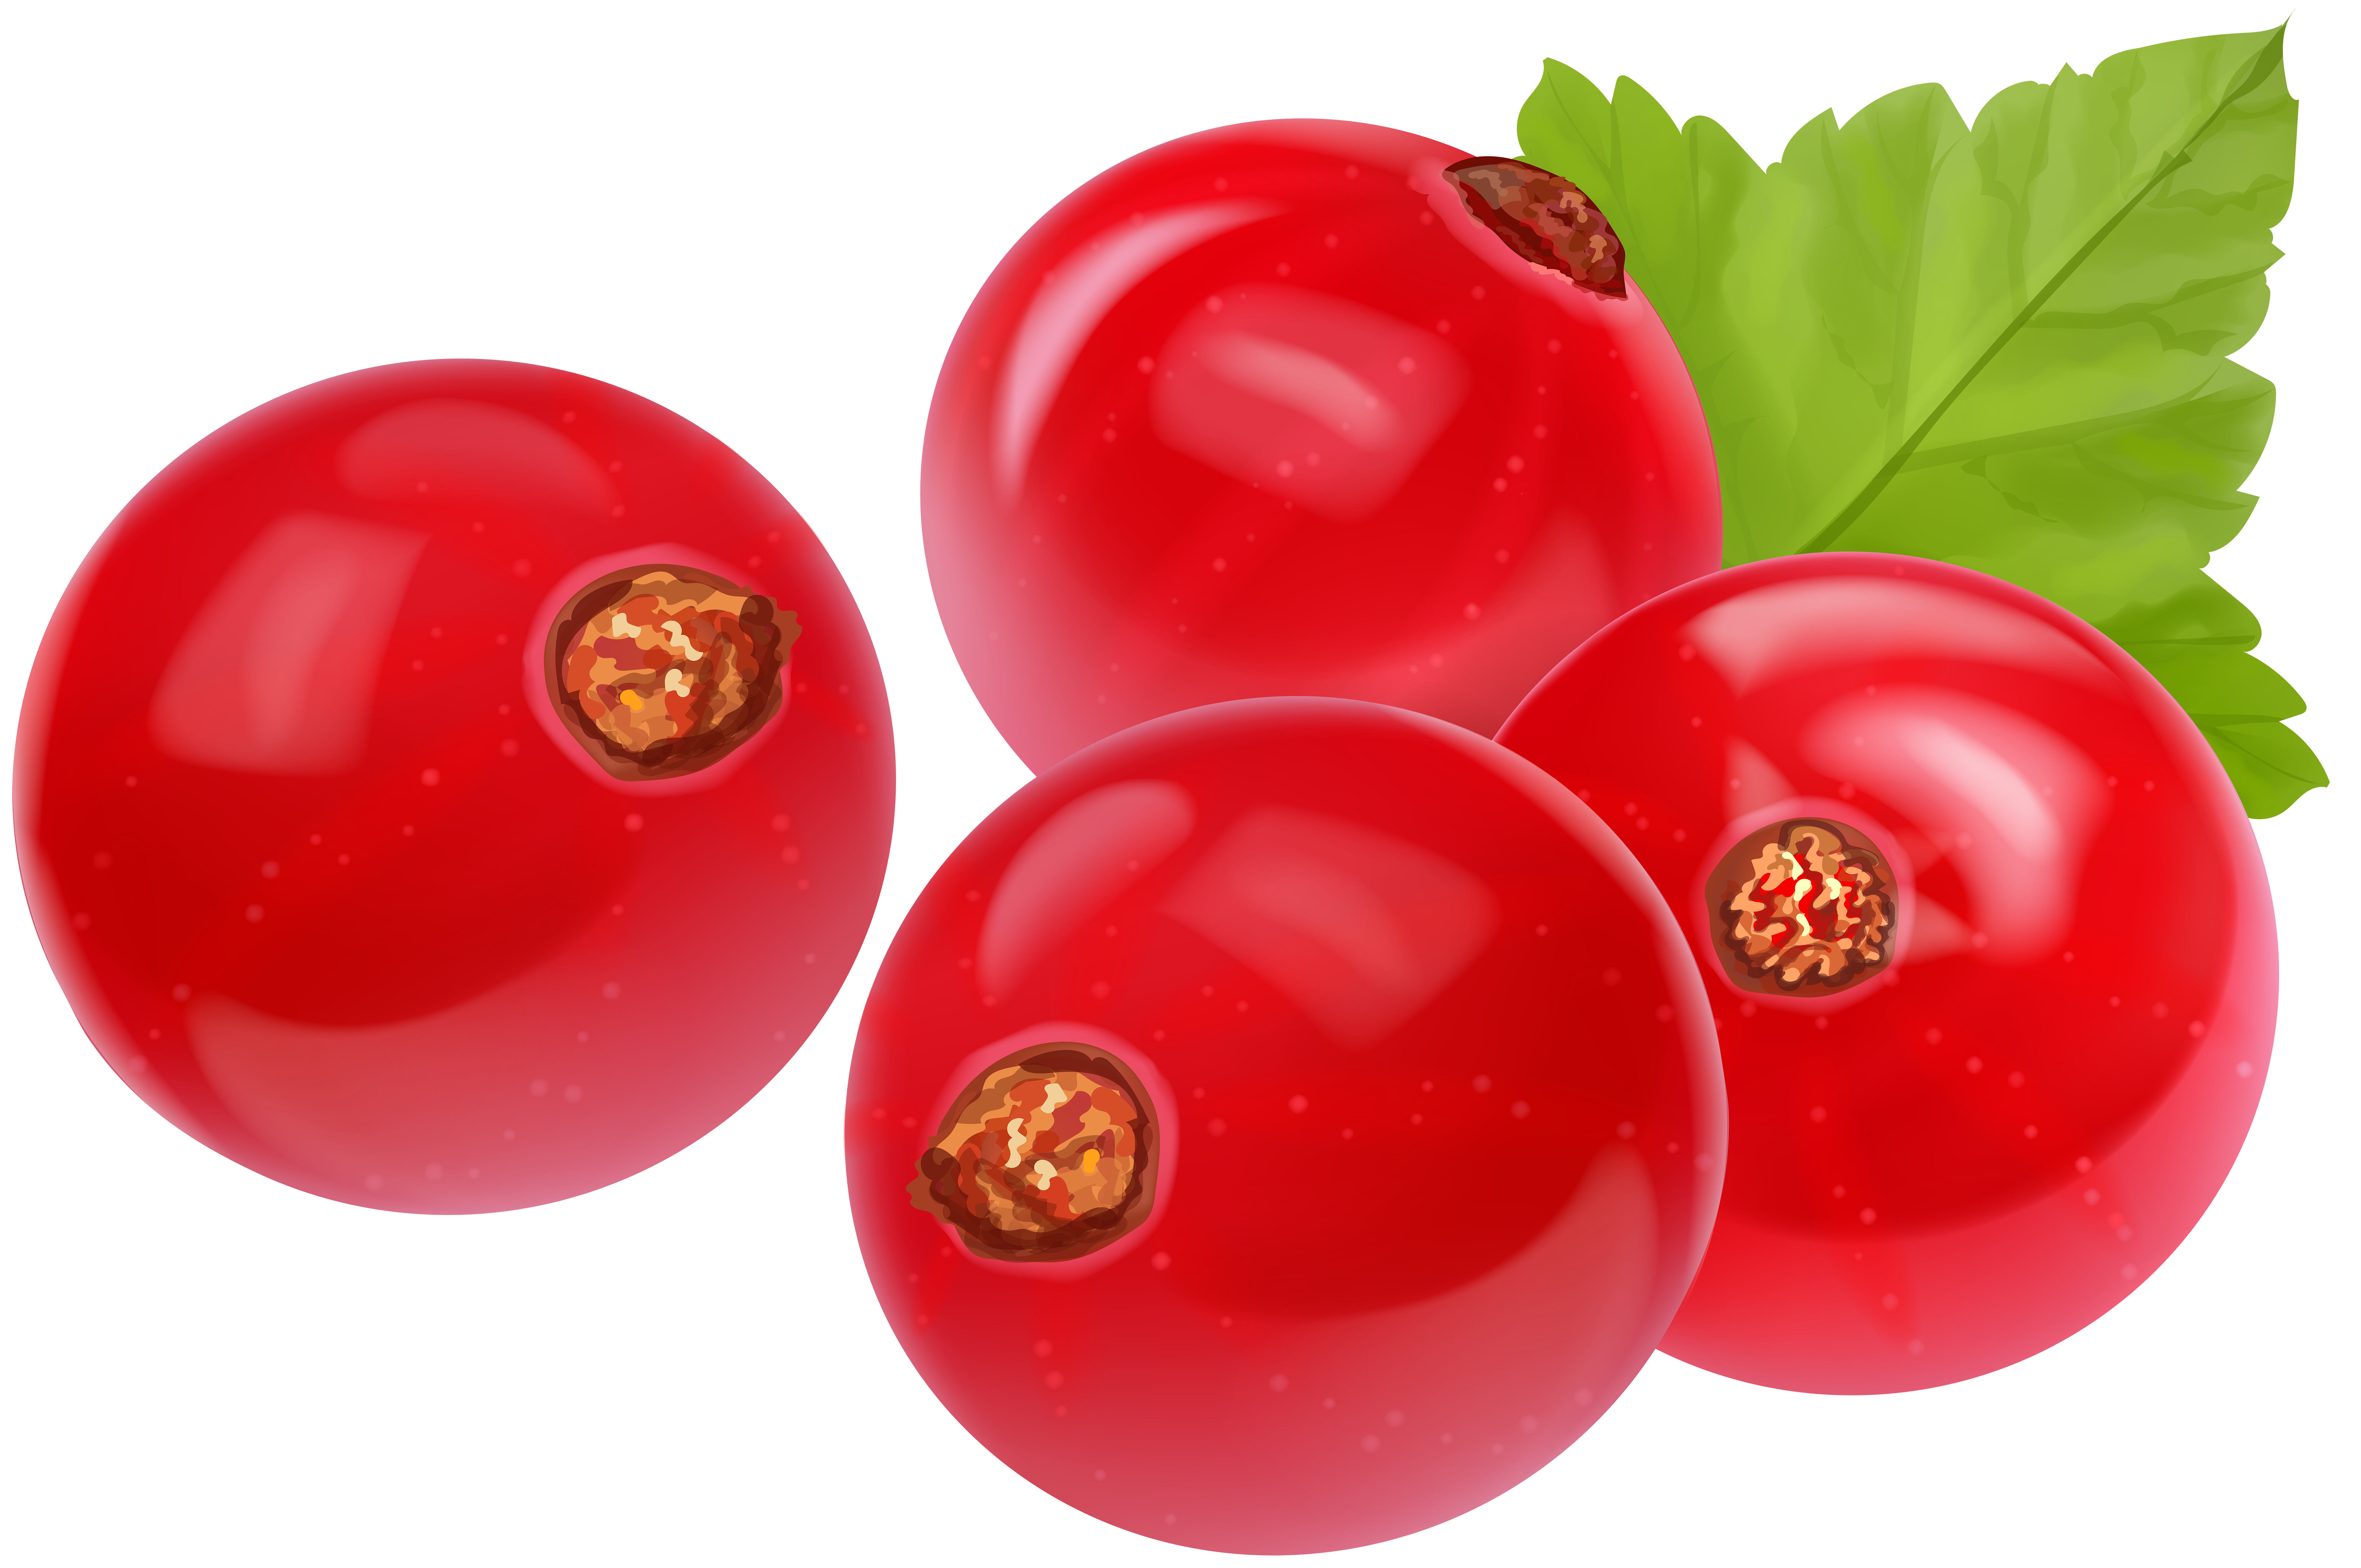 Tomatoes clipart happy tomato. Red currant transparent clip